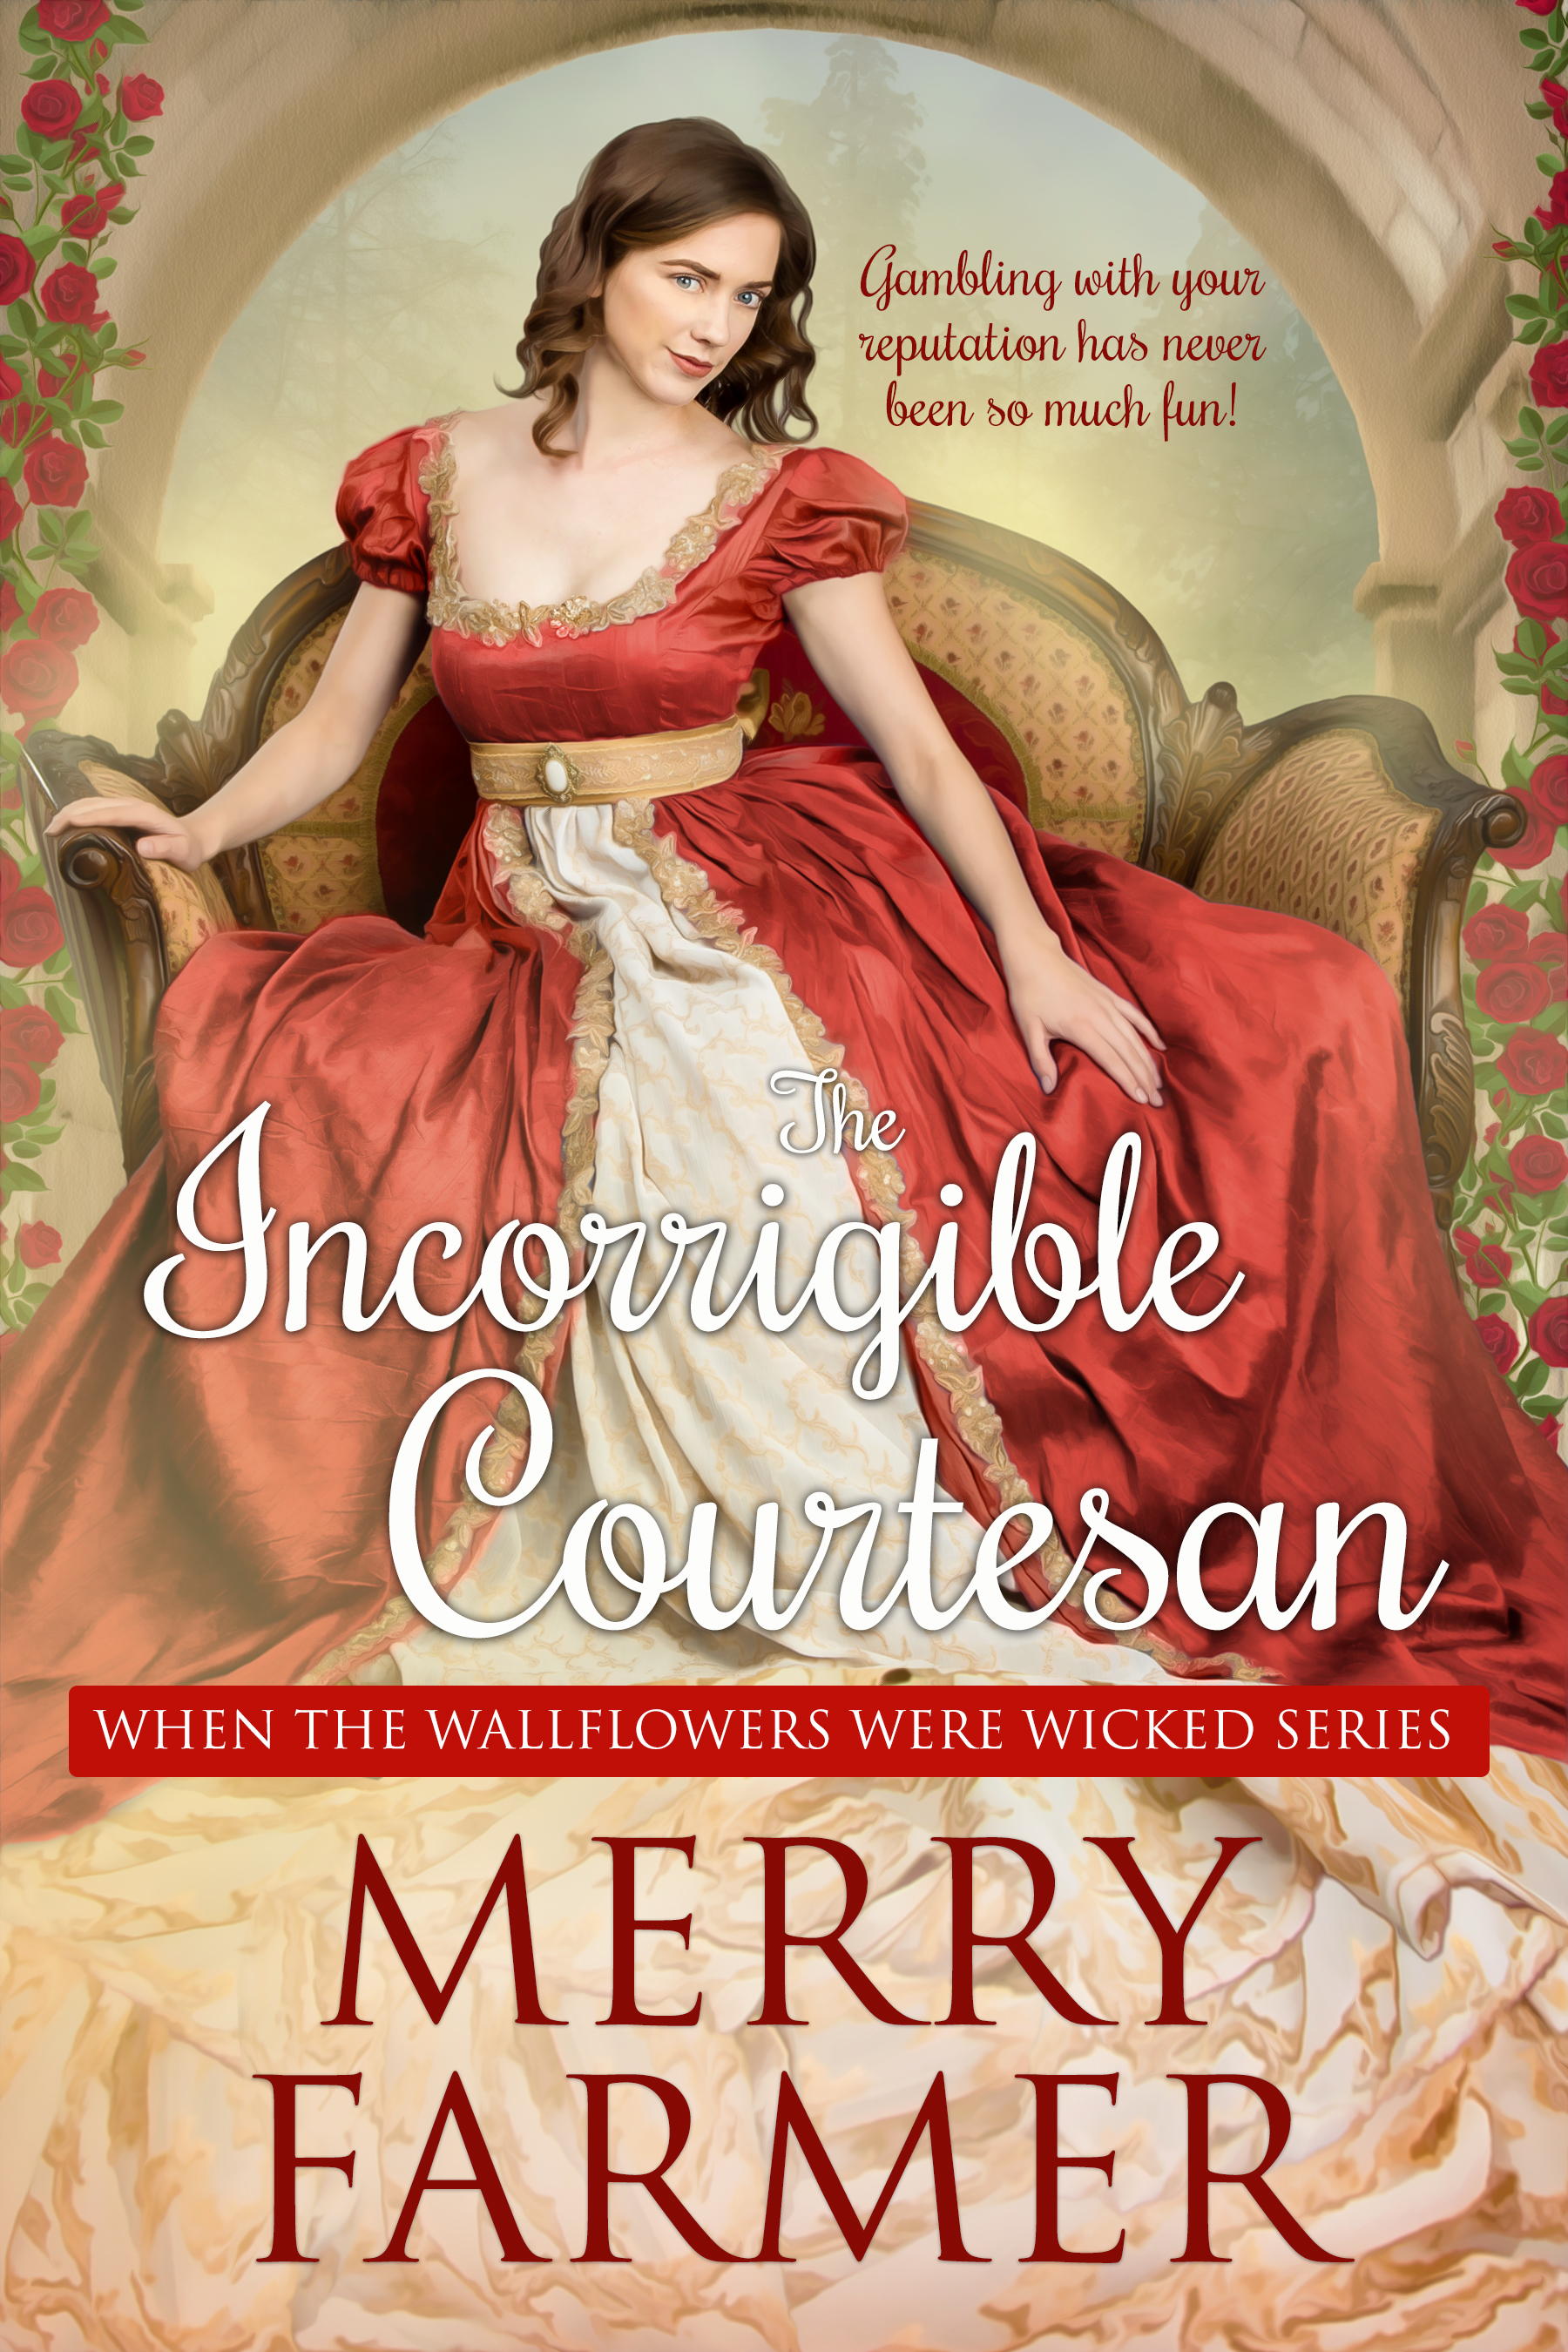 Incorrigible Courtesan (Book Two) - Gambling with your reputation has never been so much fun!The Disaster at Almack's was the beginning of the end for Miss Honor Barnes, even though her part in it was small. With her reputation in tatters, she must look for ways to secure her comfort and safety…which is where wealthy tradesman, Sebastian Boothe, comes in. And if it means a daring gamble at the card table to win her way into his bed, it's a chance she's willing to take.Sebastian is just enough of a rake to bow to Honor's wicked wishes, but he has more than fun on his mind. His entire fortune is in danger, thanks to the underhanded machinations of Lord James Grey. With time running out to prove he is the rightful owner of the profits of his recent trade mission to India, he is faced with the impossible unfairness of a commoner challenging the nobility.But Sebastian has an ace in his corner in the form of Honor and her skills. Together, they can set a trap to take down the most notorious cheat in the ton…if Sebastian can learn to trust Honor first.A light-hearted, fun, SUPER steamy, Regency romp—a quick read, not to be taken too seriously.PLEASE BE ADVISED – Steam Level: Five-Alarm Fire with a generous helping of F-bombs. Don't say you weren't warned.